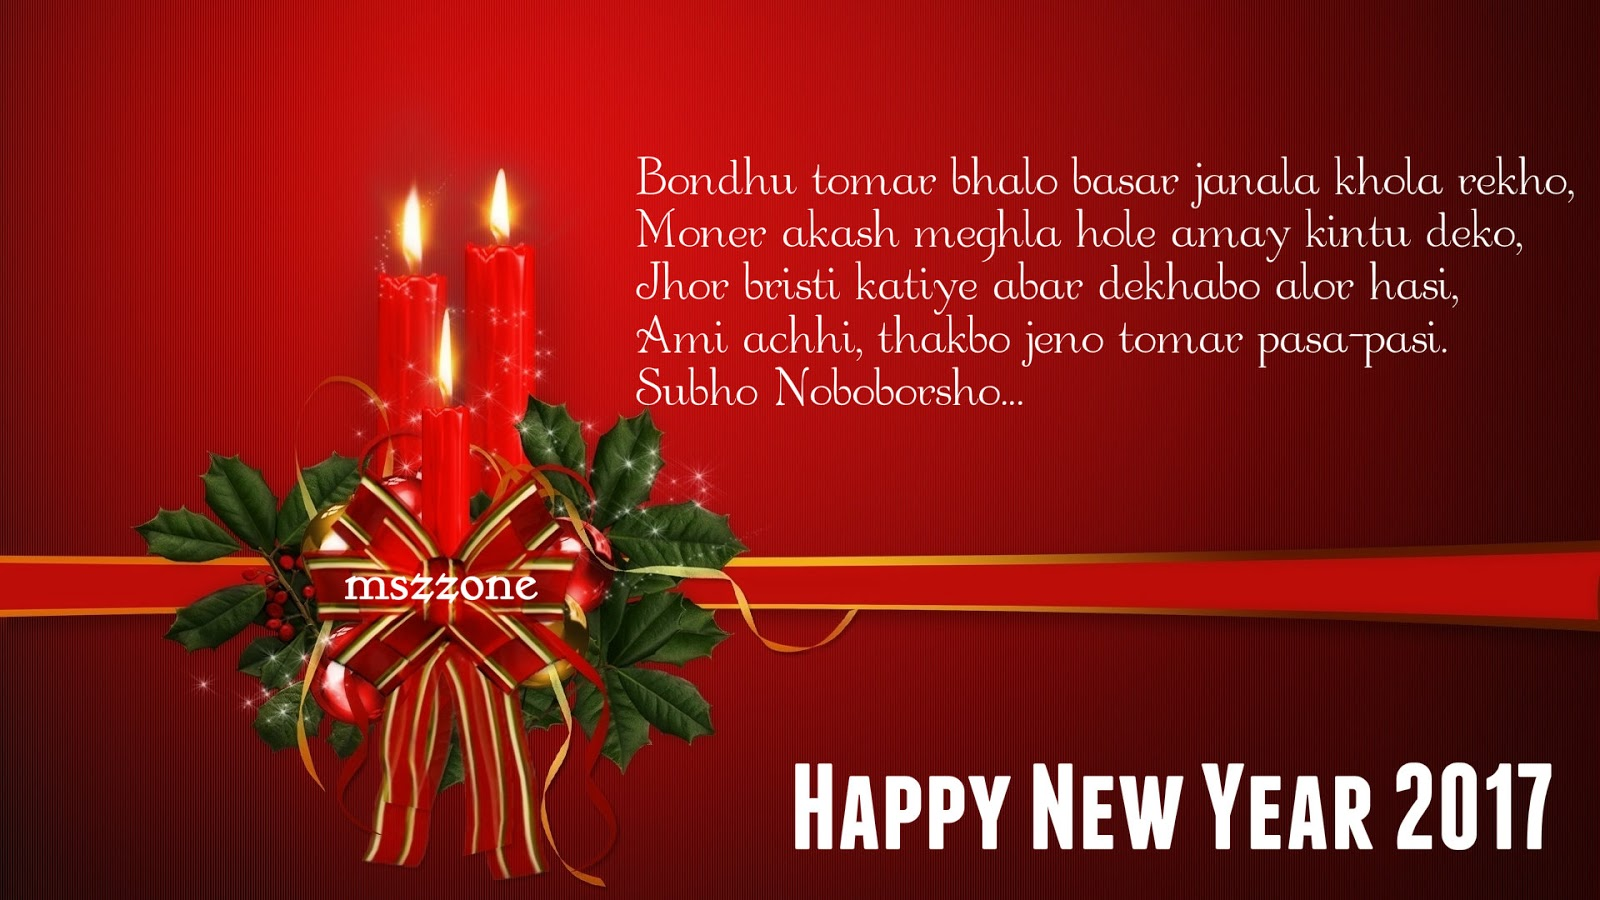 Mszzone happy new year 2017 picture messages in different languages mszzone m4hsunfo